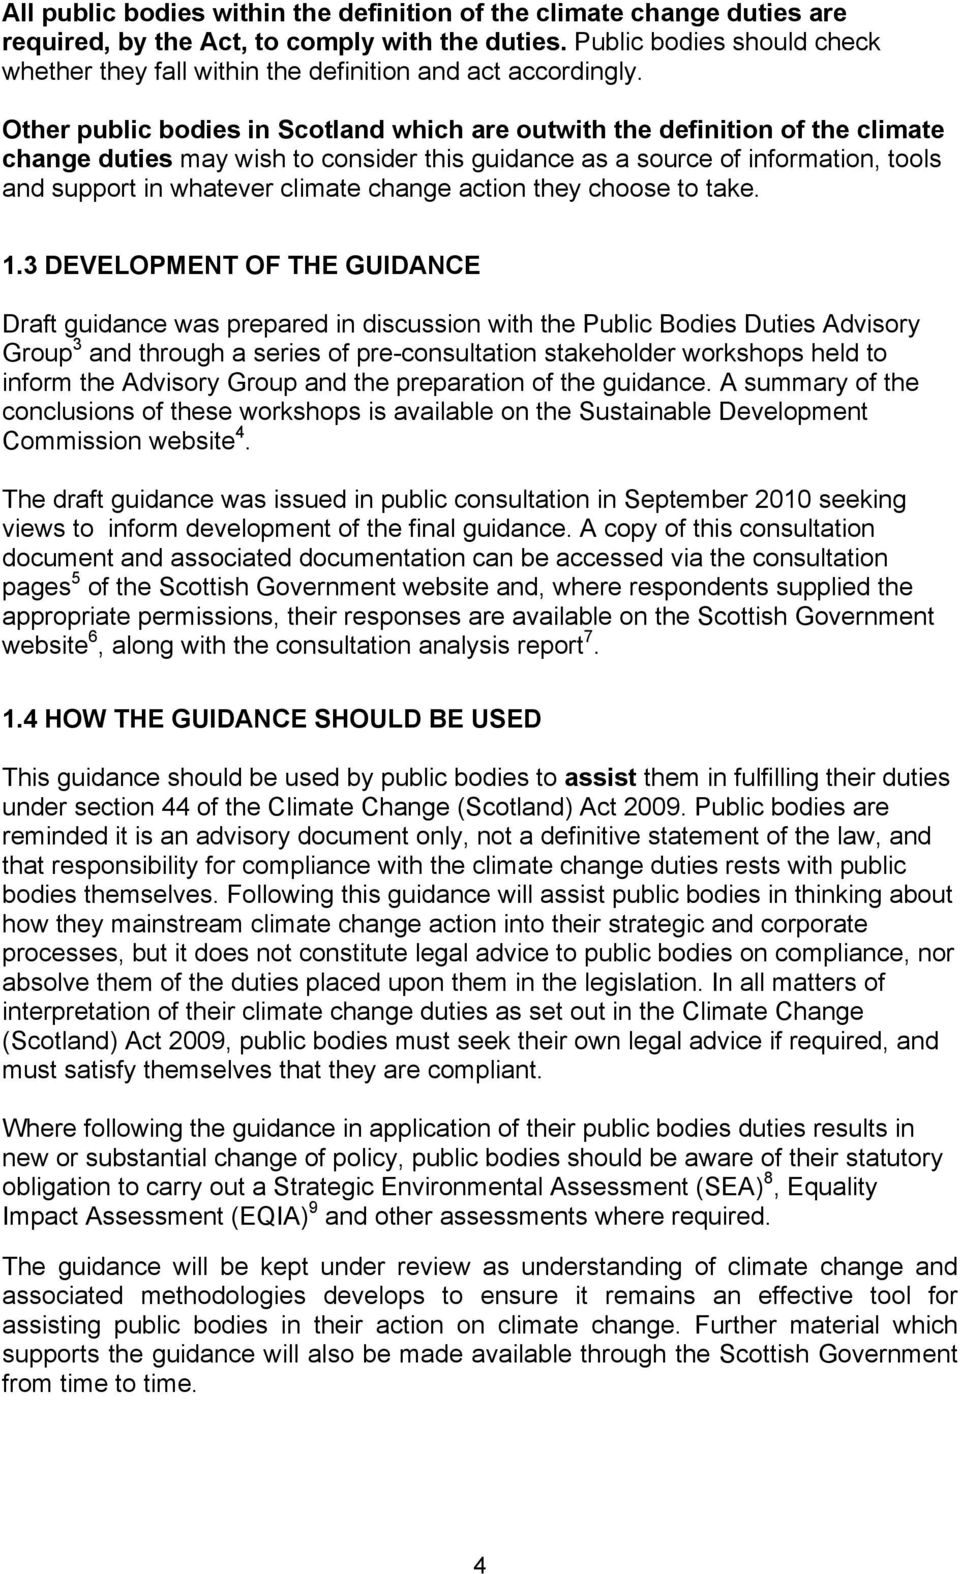 Other public bodies in Scotland which are outwith the definition of the climate change duties may wish to consider this guidance as a source of information, tools and support in whatever climate